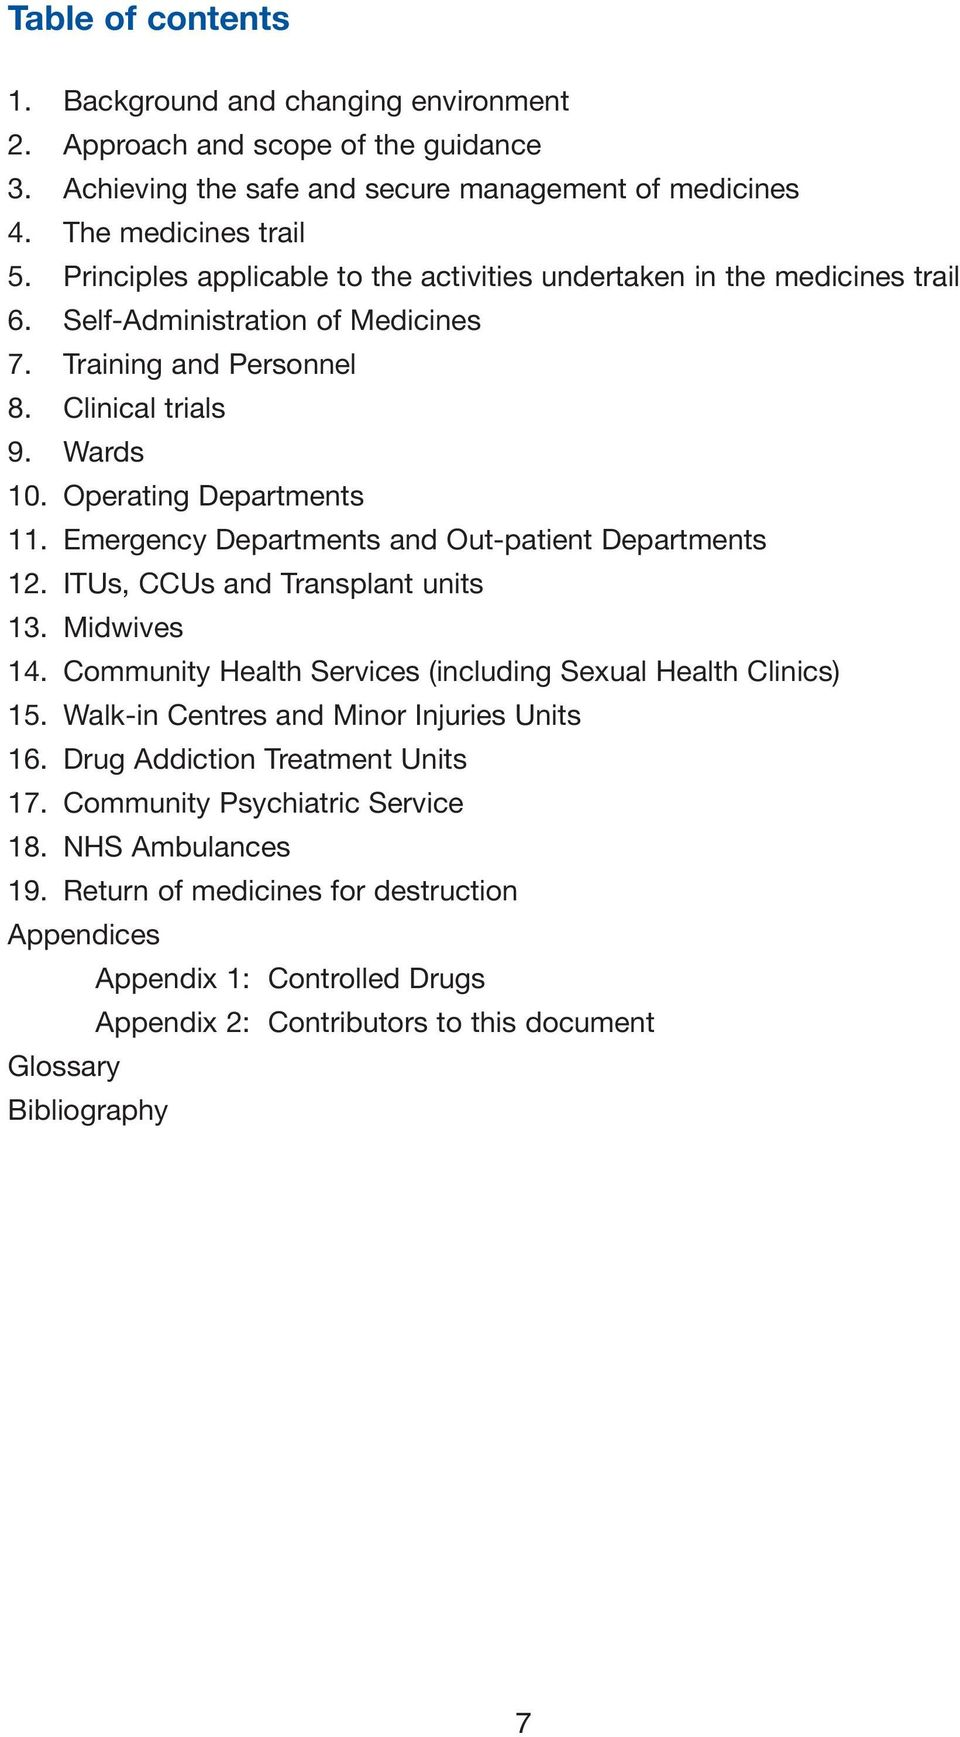 Emergency Departments and Out-patient Departments 12. ITUs, CCUs and Transplant units 13. Midwives 14. Community Health Services (including Sexual Health Clinics) 15.